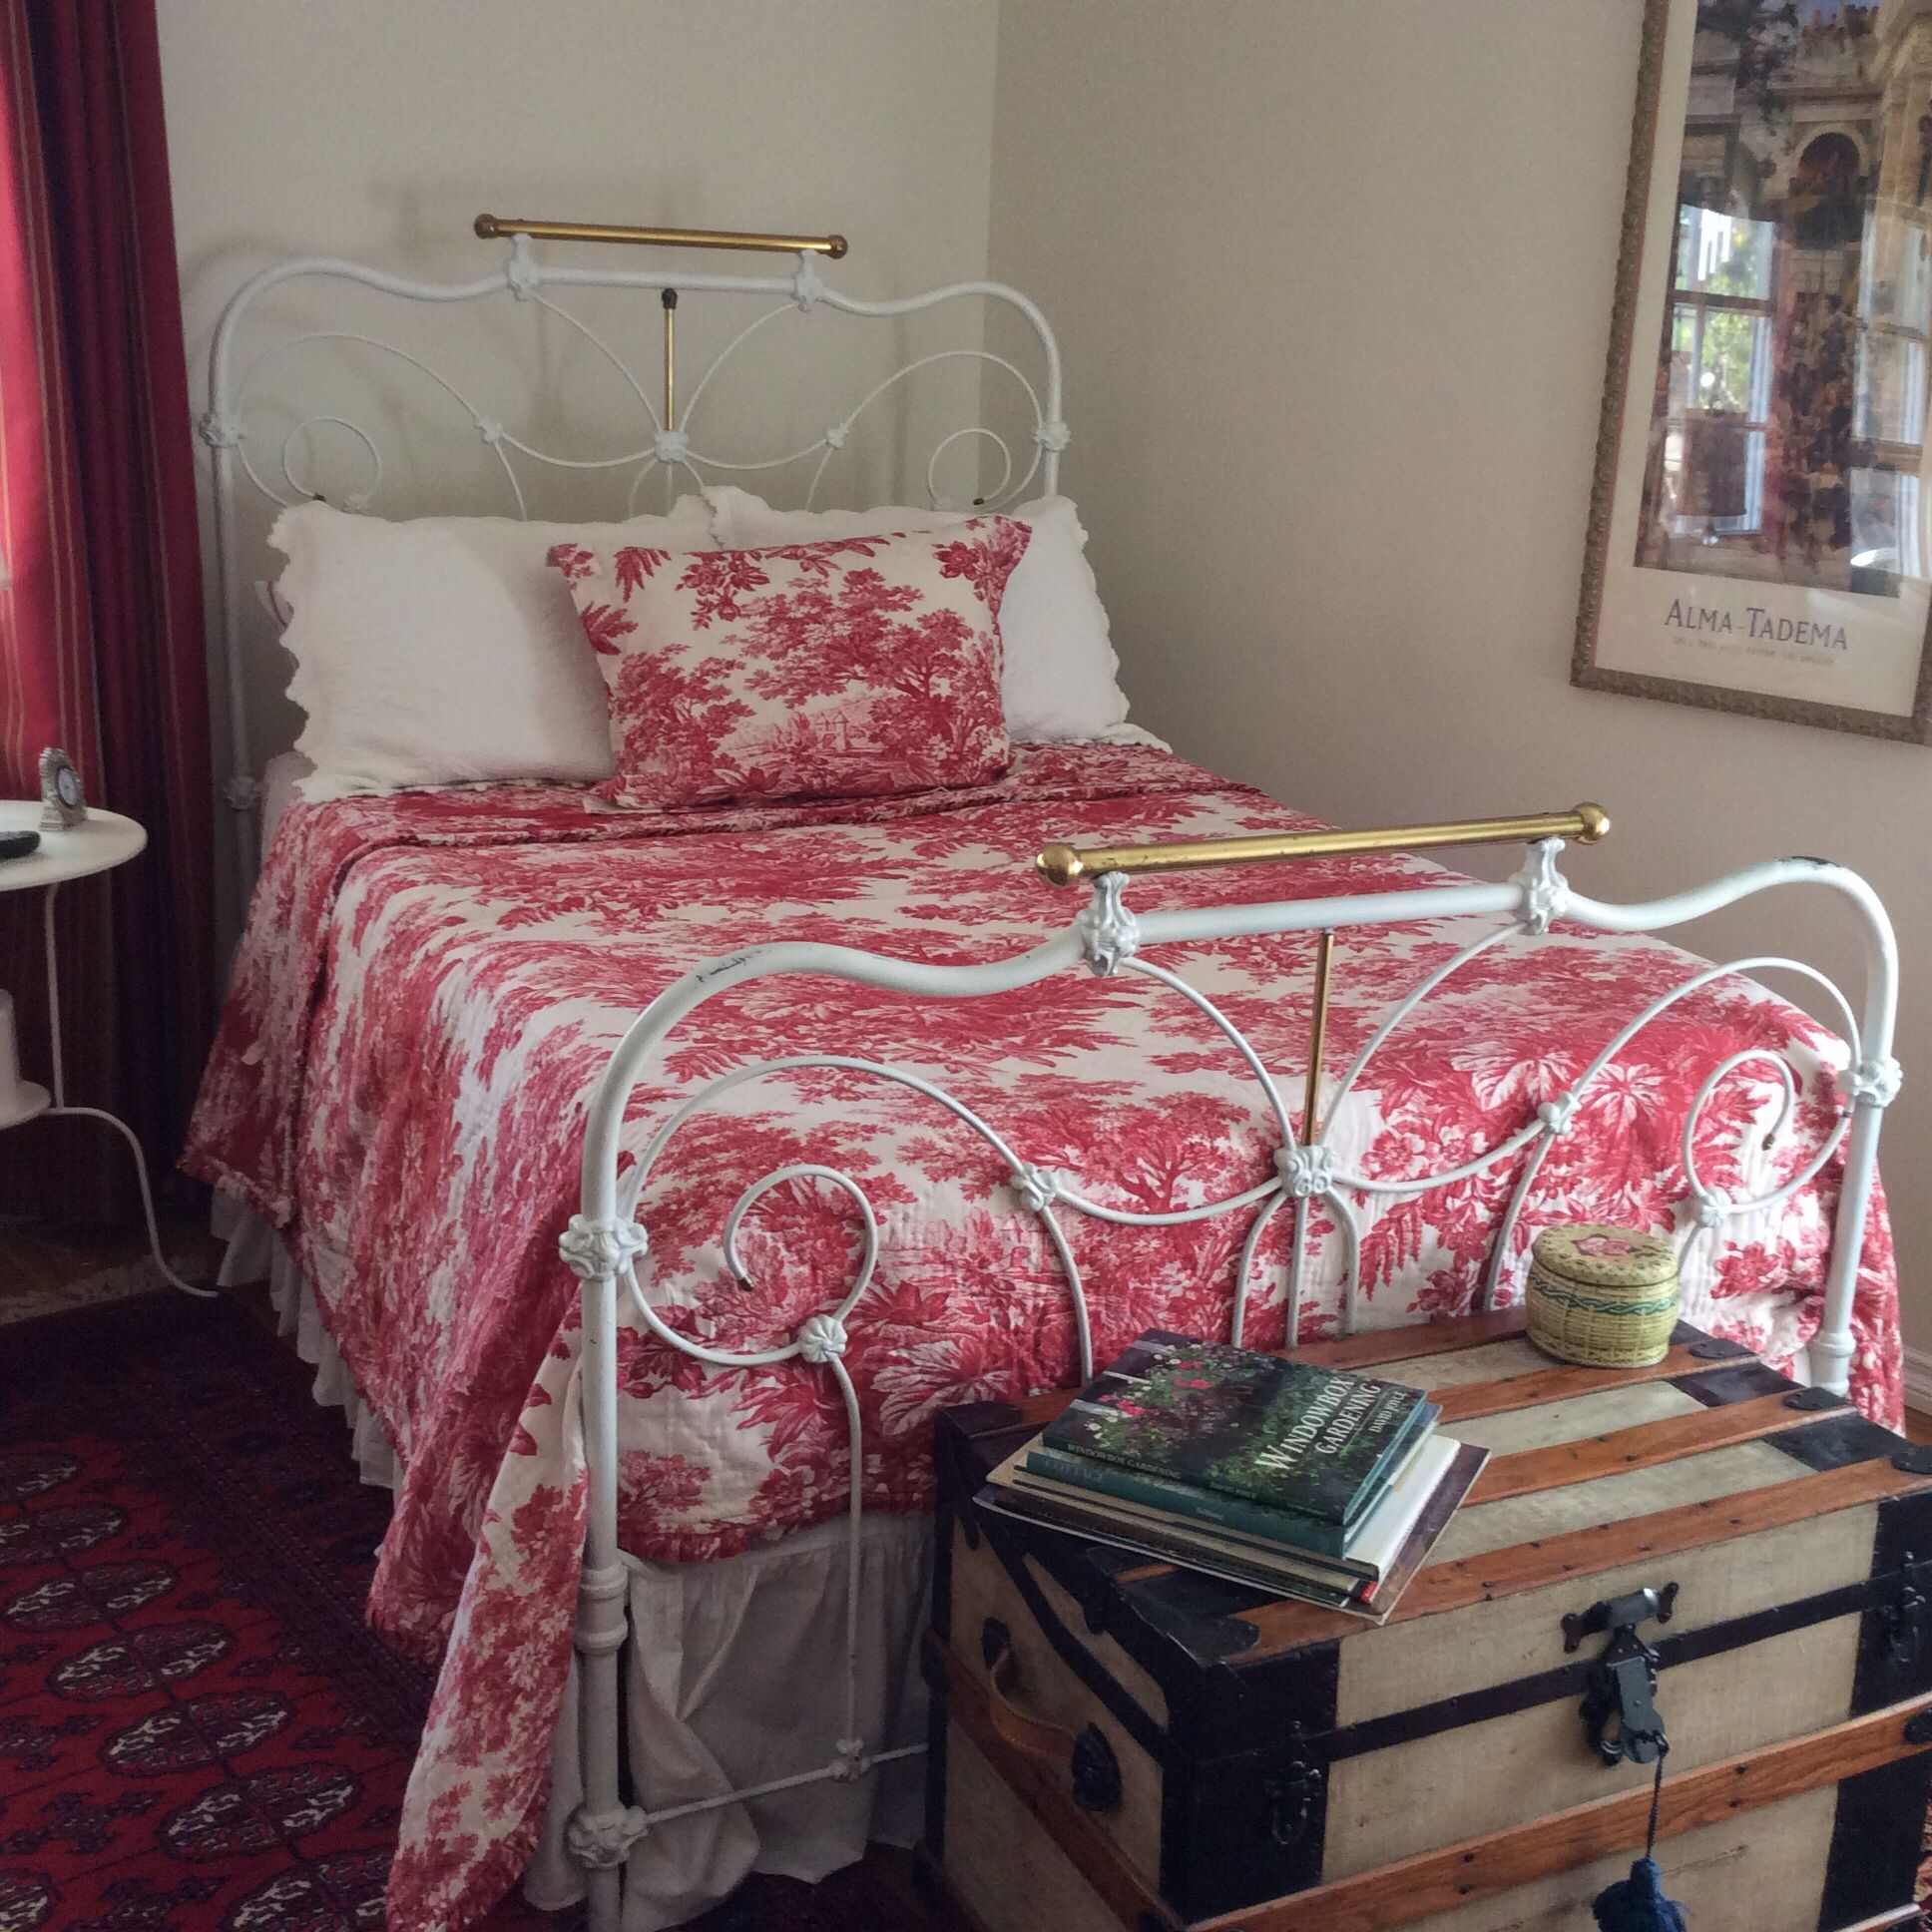 Vintage Iron Bed And Cranberry Toile In Bedroom